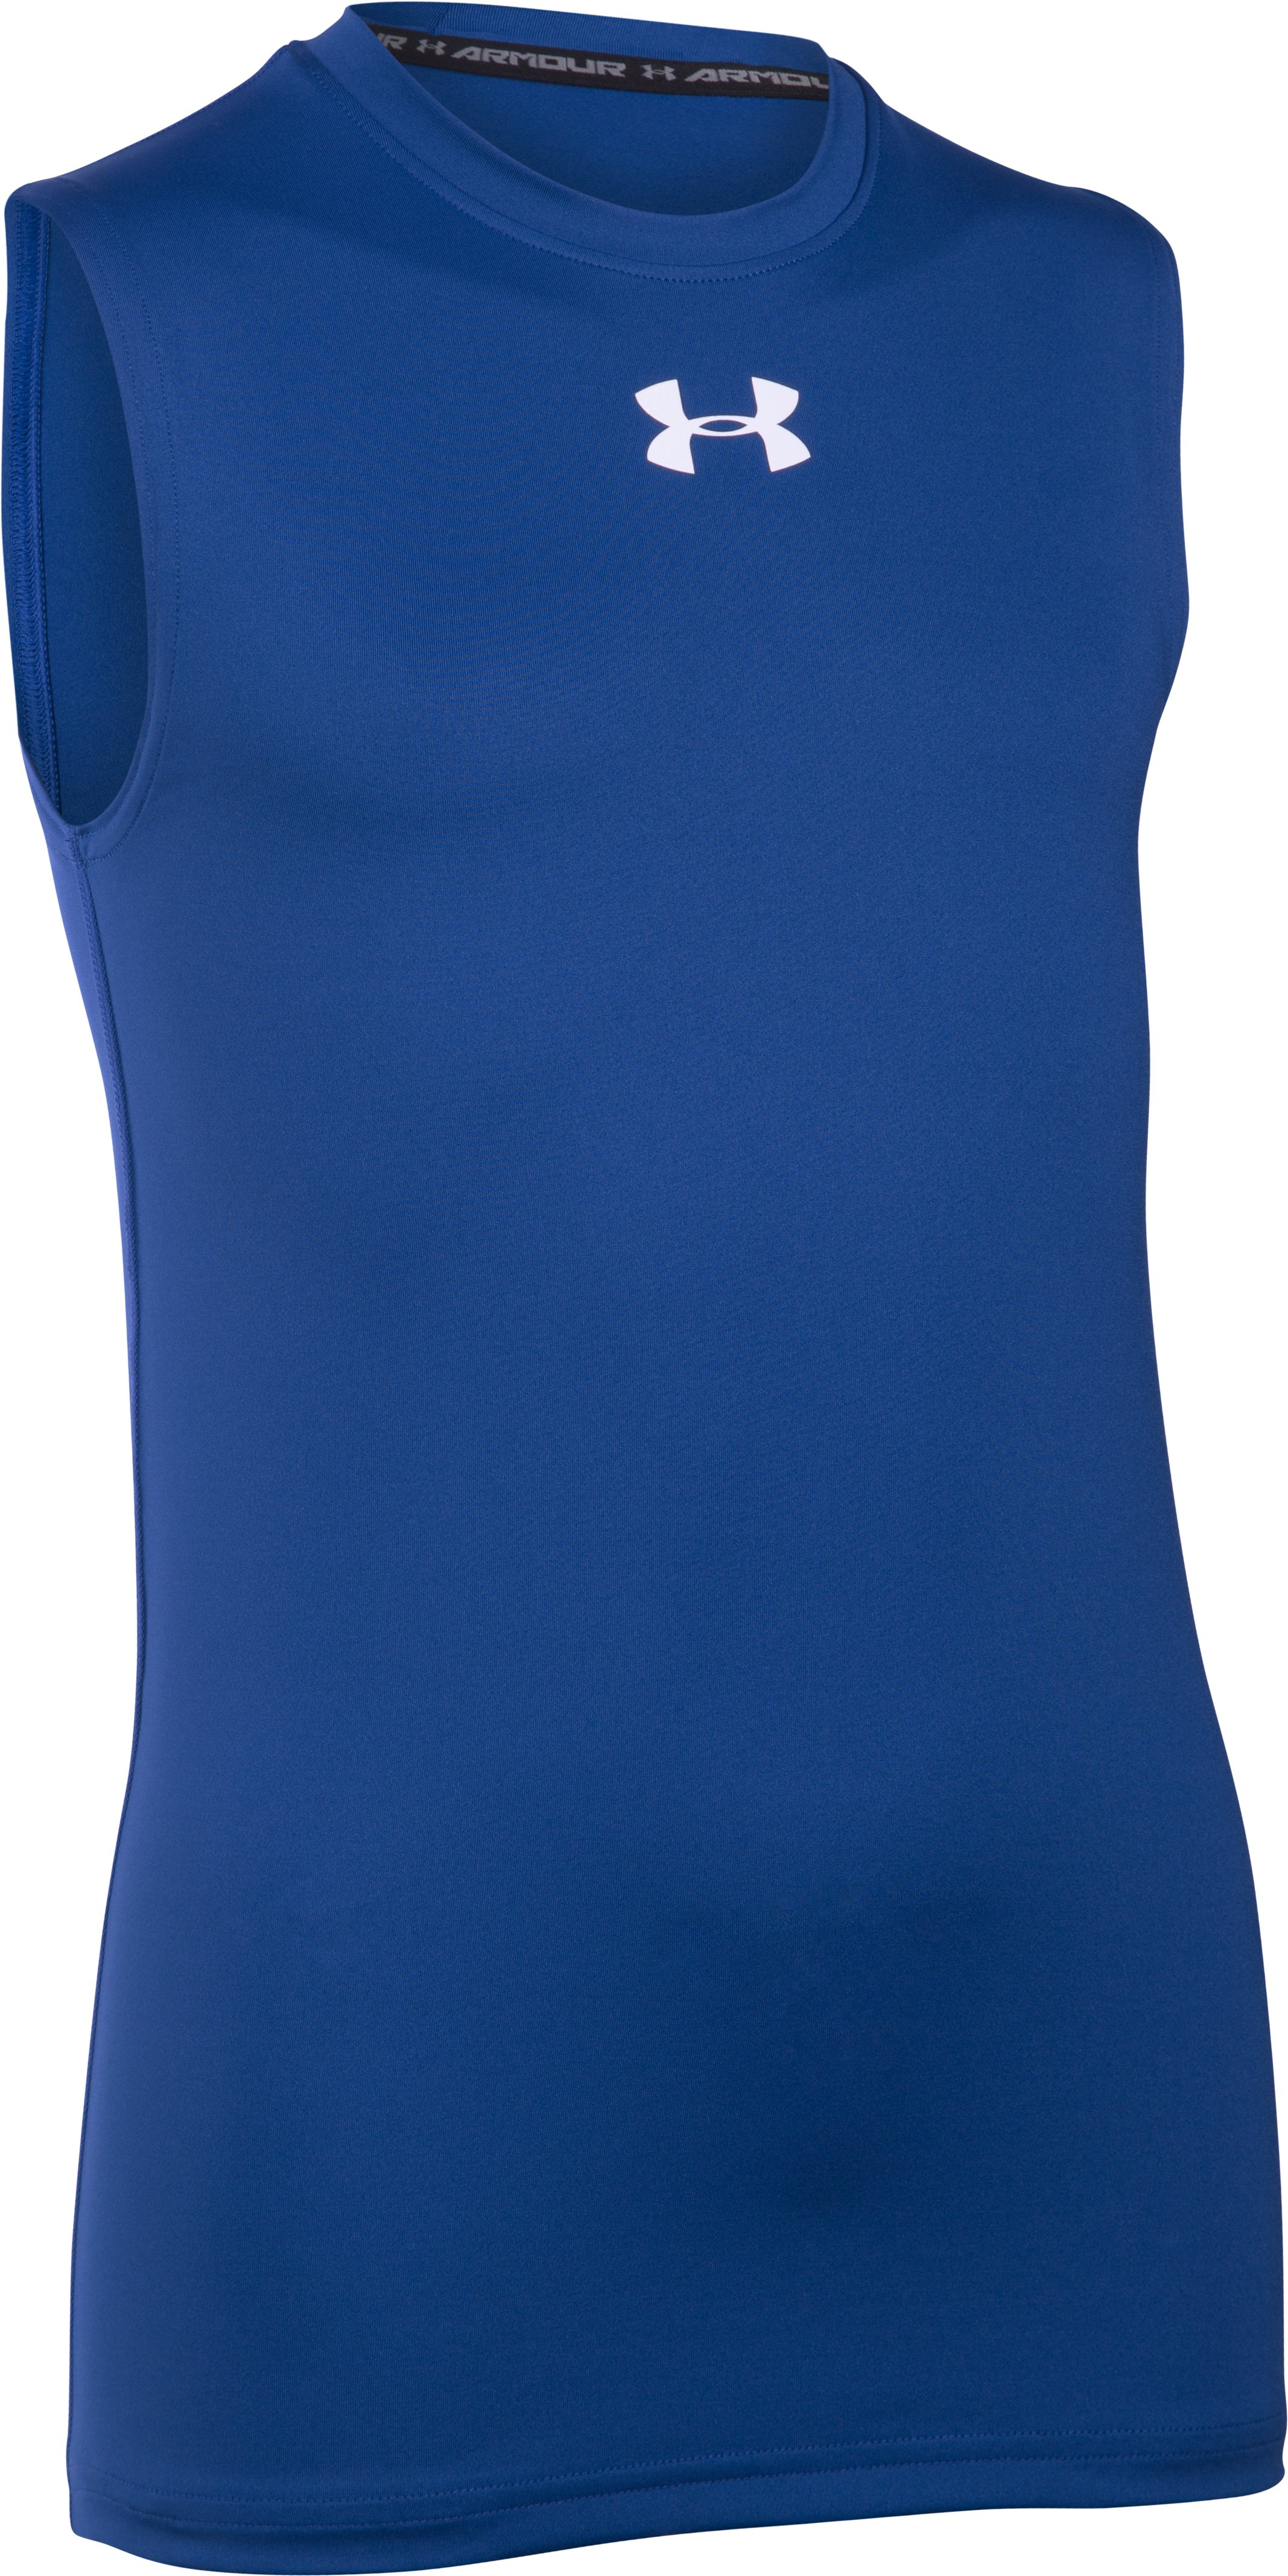 Boys' UA HeatGear® Armour Sleeveless T-Shirt, Royal, zoomed image